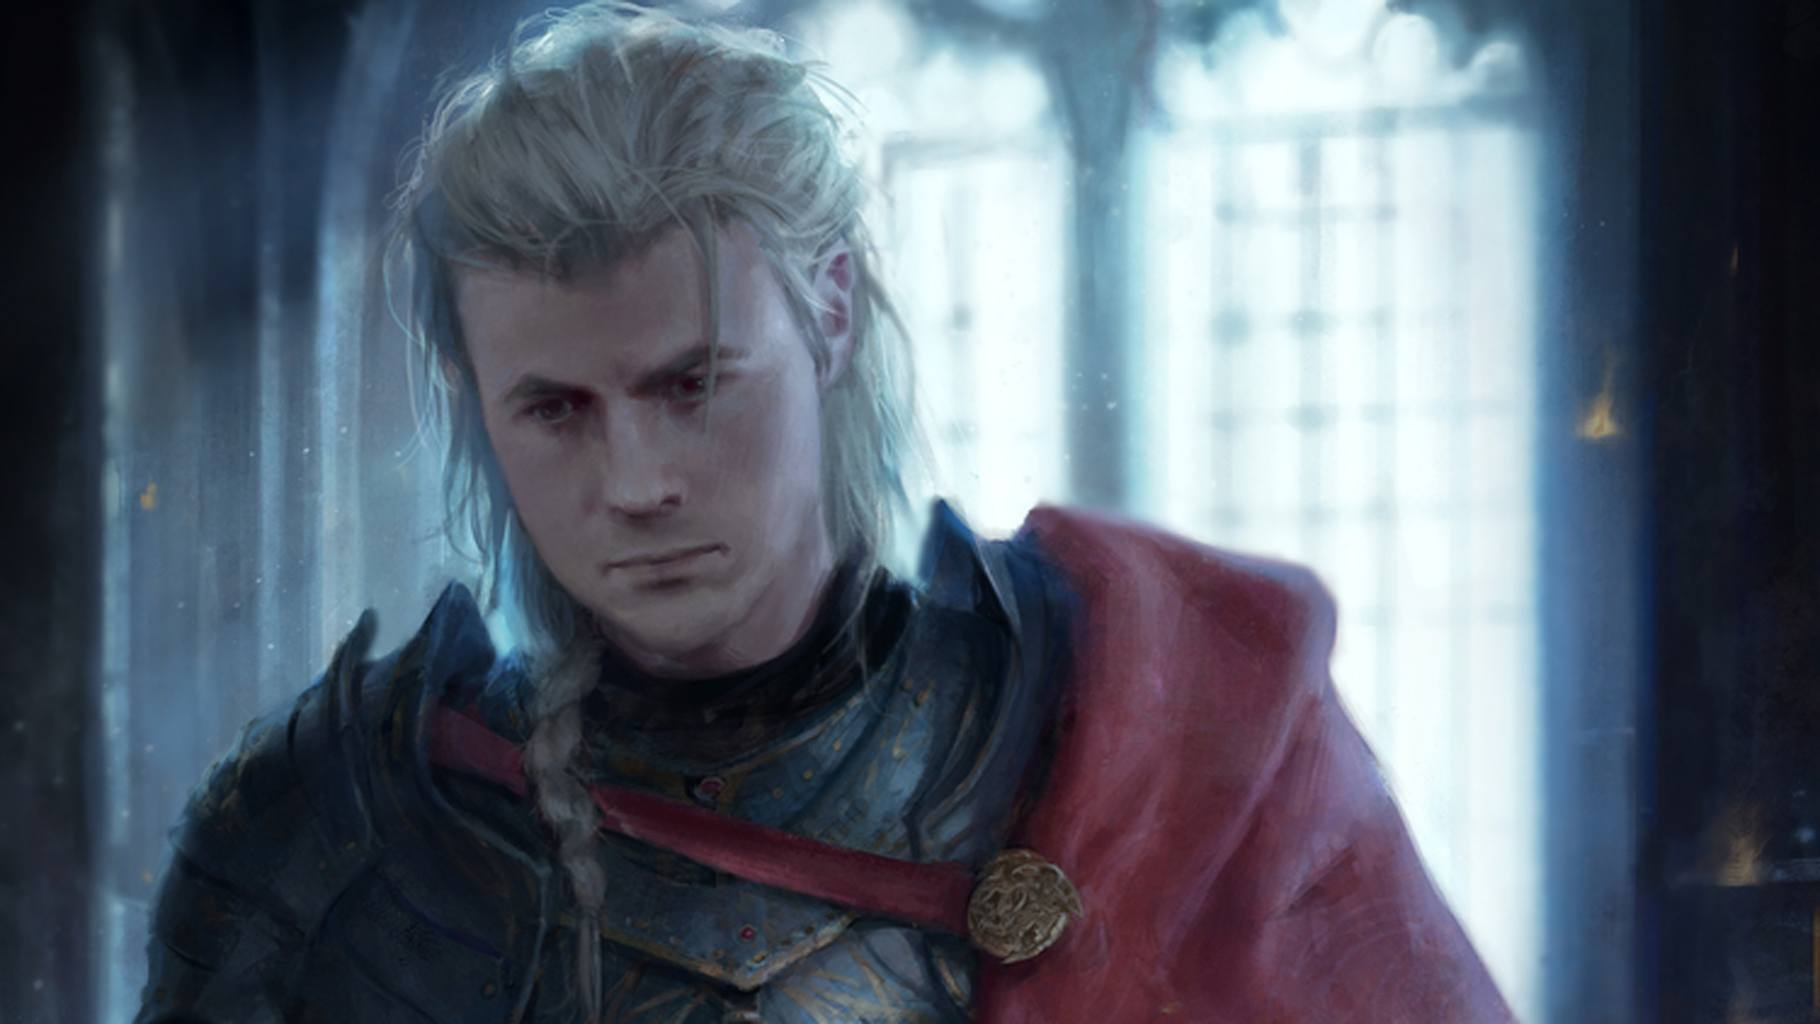 Rhaegar Targaryen, wearing a red cloak and looking down to his right